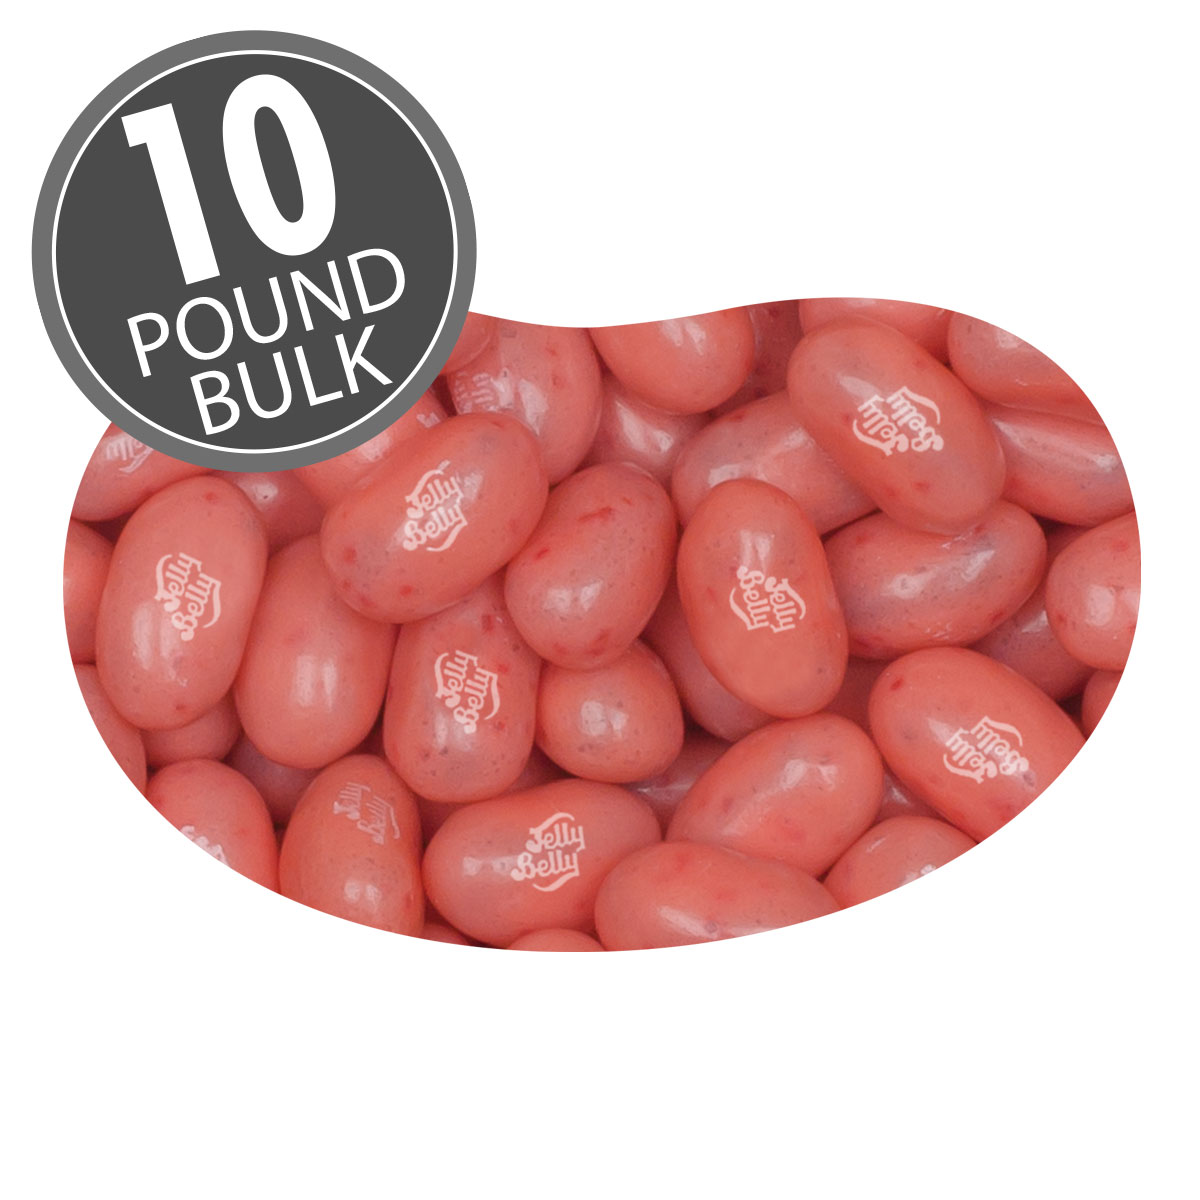 Strawberry Daiquiri Jelly Beans - 10 lbs bulk